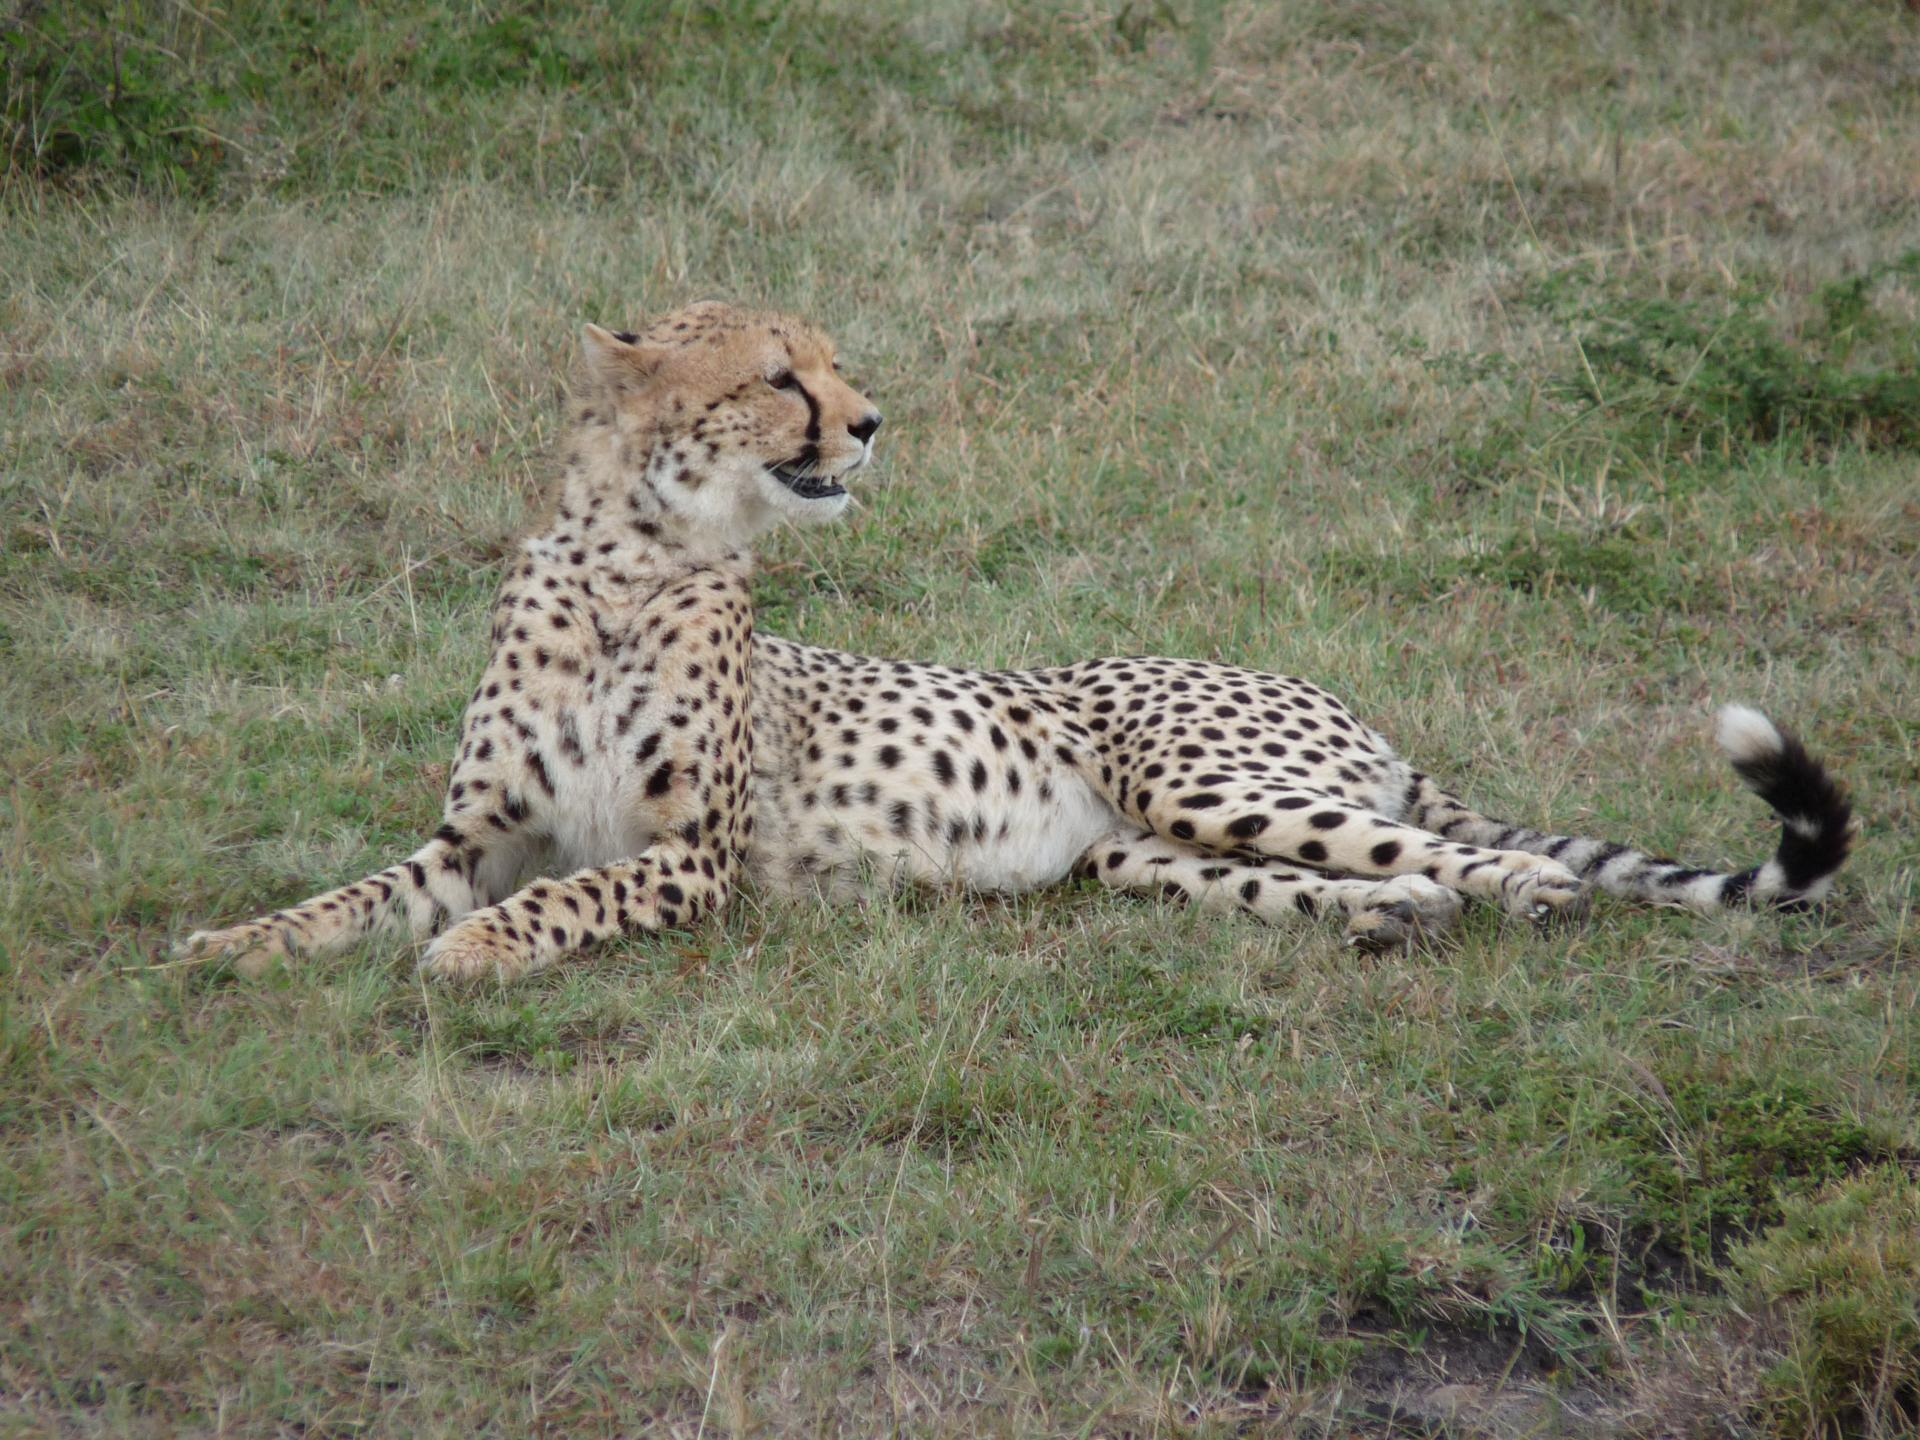 Wildlife Safari /Kenya Adventure Safaris/Holidays in Masai Mara